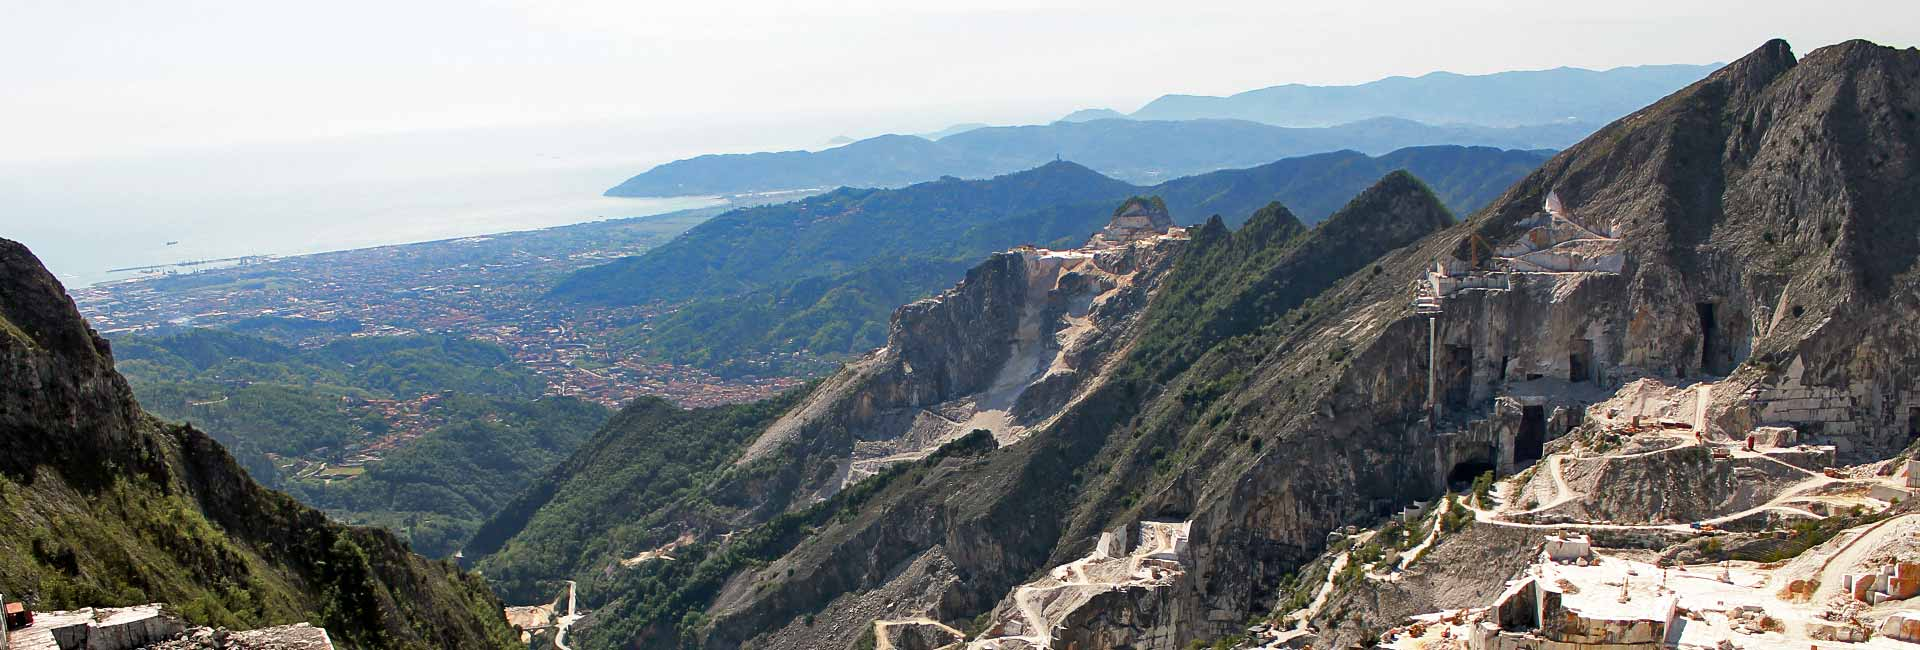 Visit to the Carrara Marble Quarries